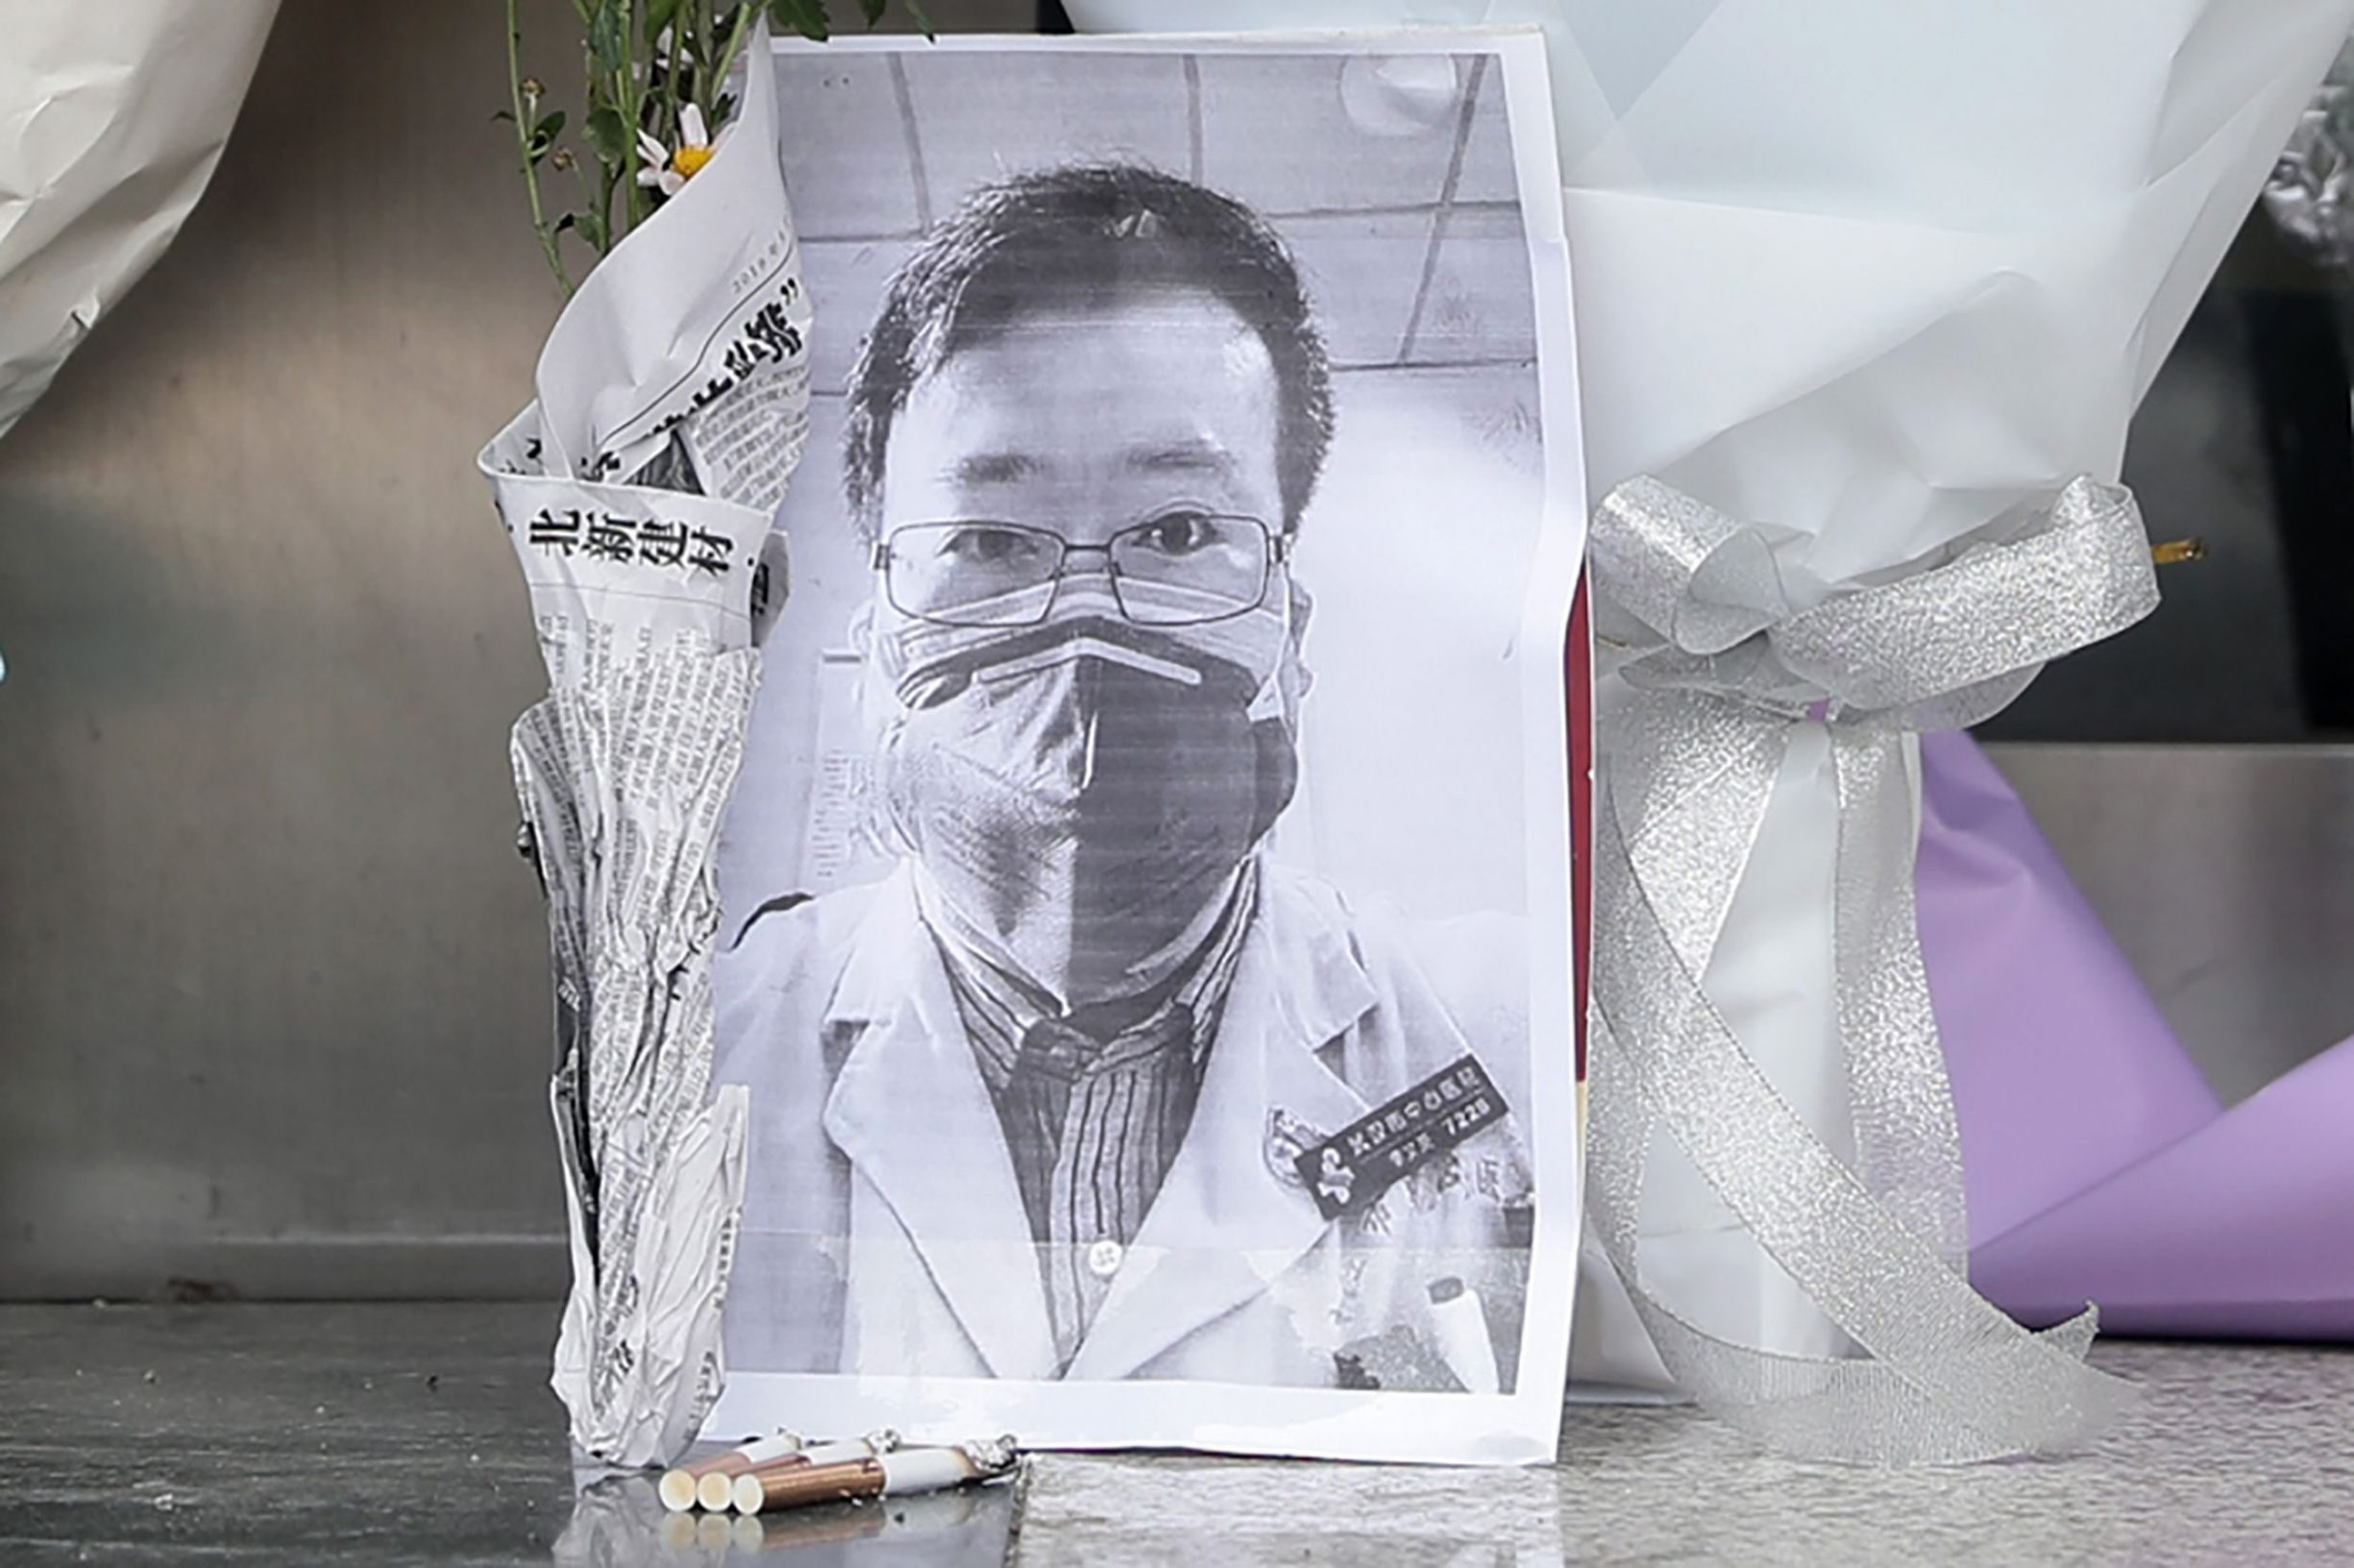 A photo of the late ophthalmologist Li Wenliang is seen with flower bouquets at the Houhu Branch of Wuhan Central Hospital in Wuhan in China's central Hubei province on February 7, 2020. - A Chinese doctor who was punished after raising the alarm about China's new coronavirus died from the pathogen on February 7, sparking an outpouring of grief and anger over a worsening crisis that has now killed more than 630 people. (Photo by STR / AFP) / China OUT